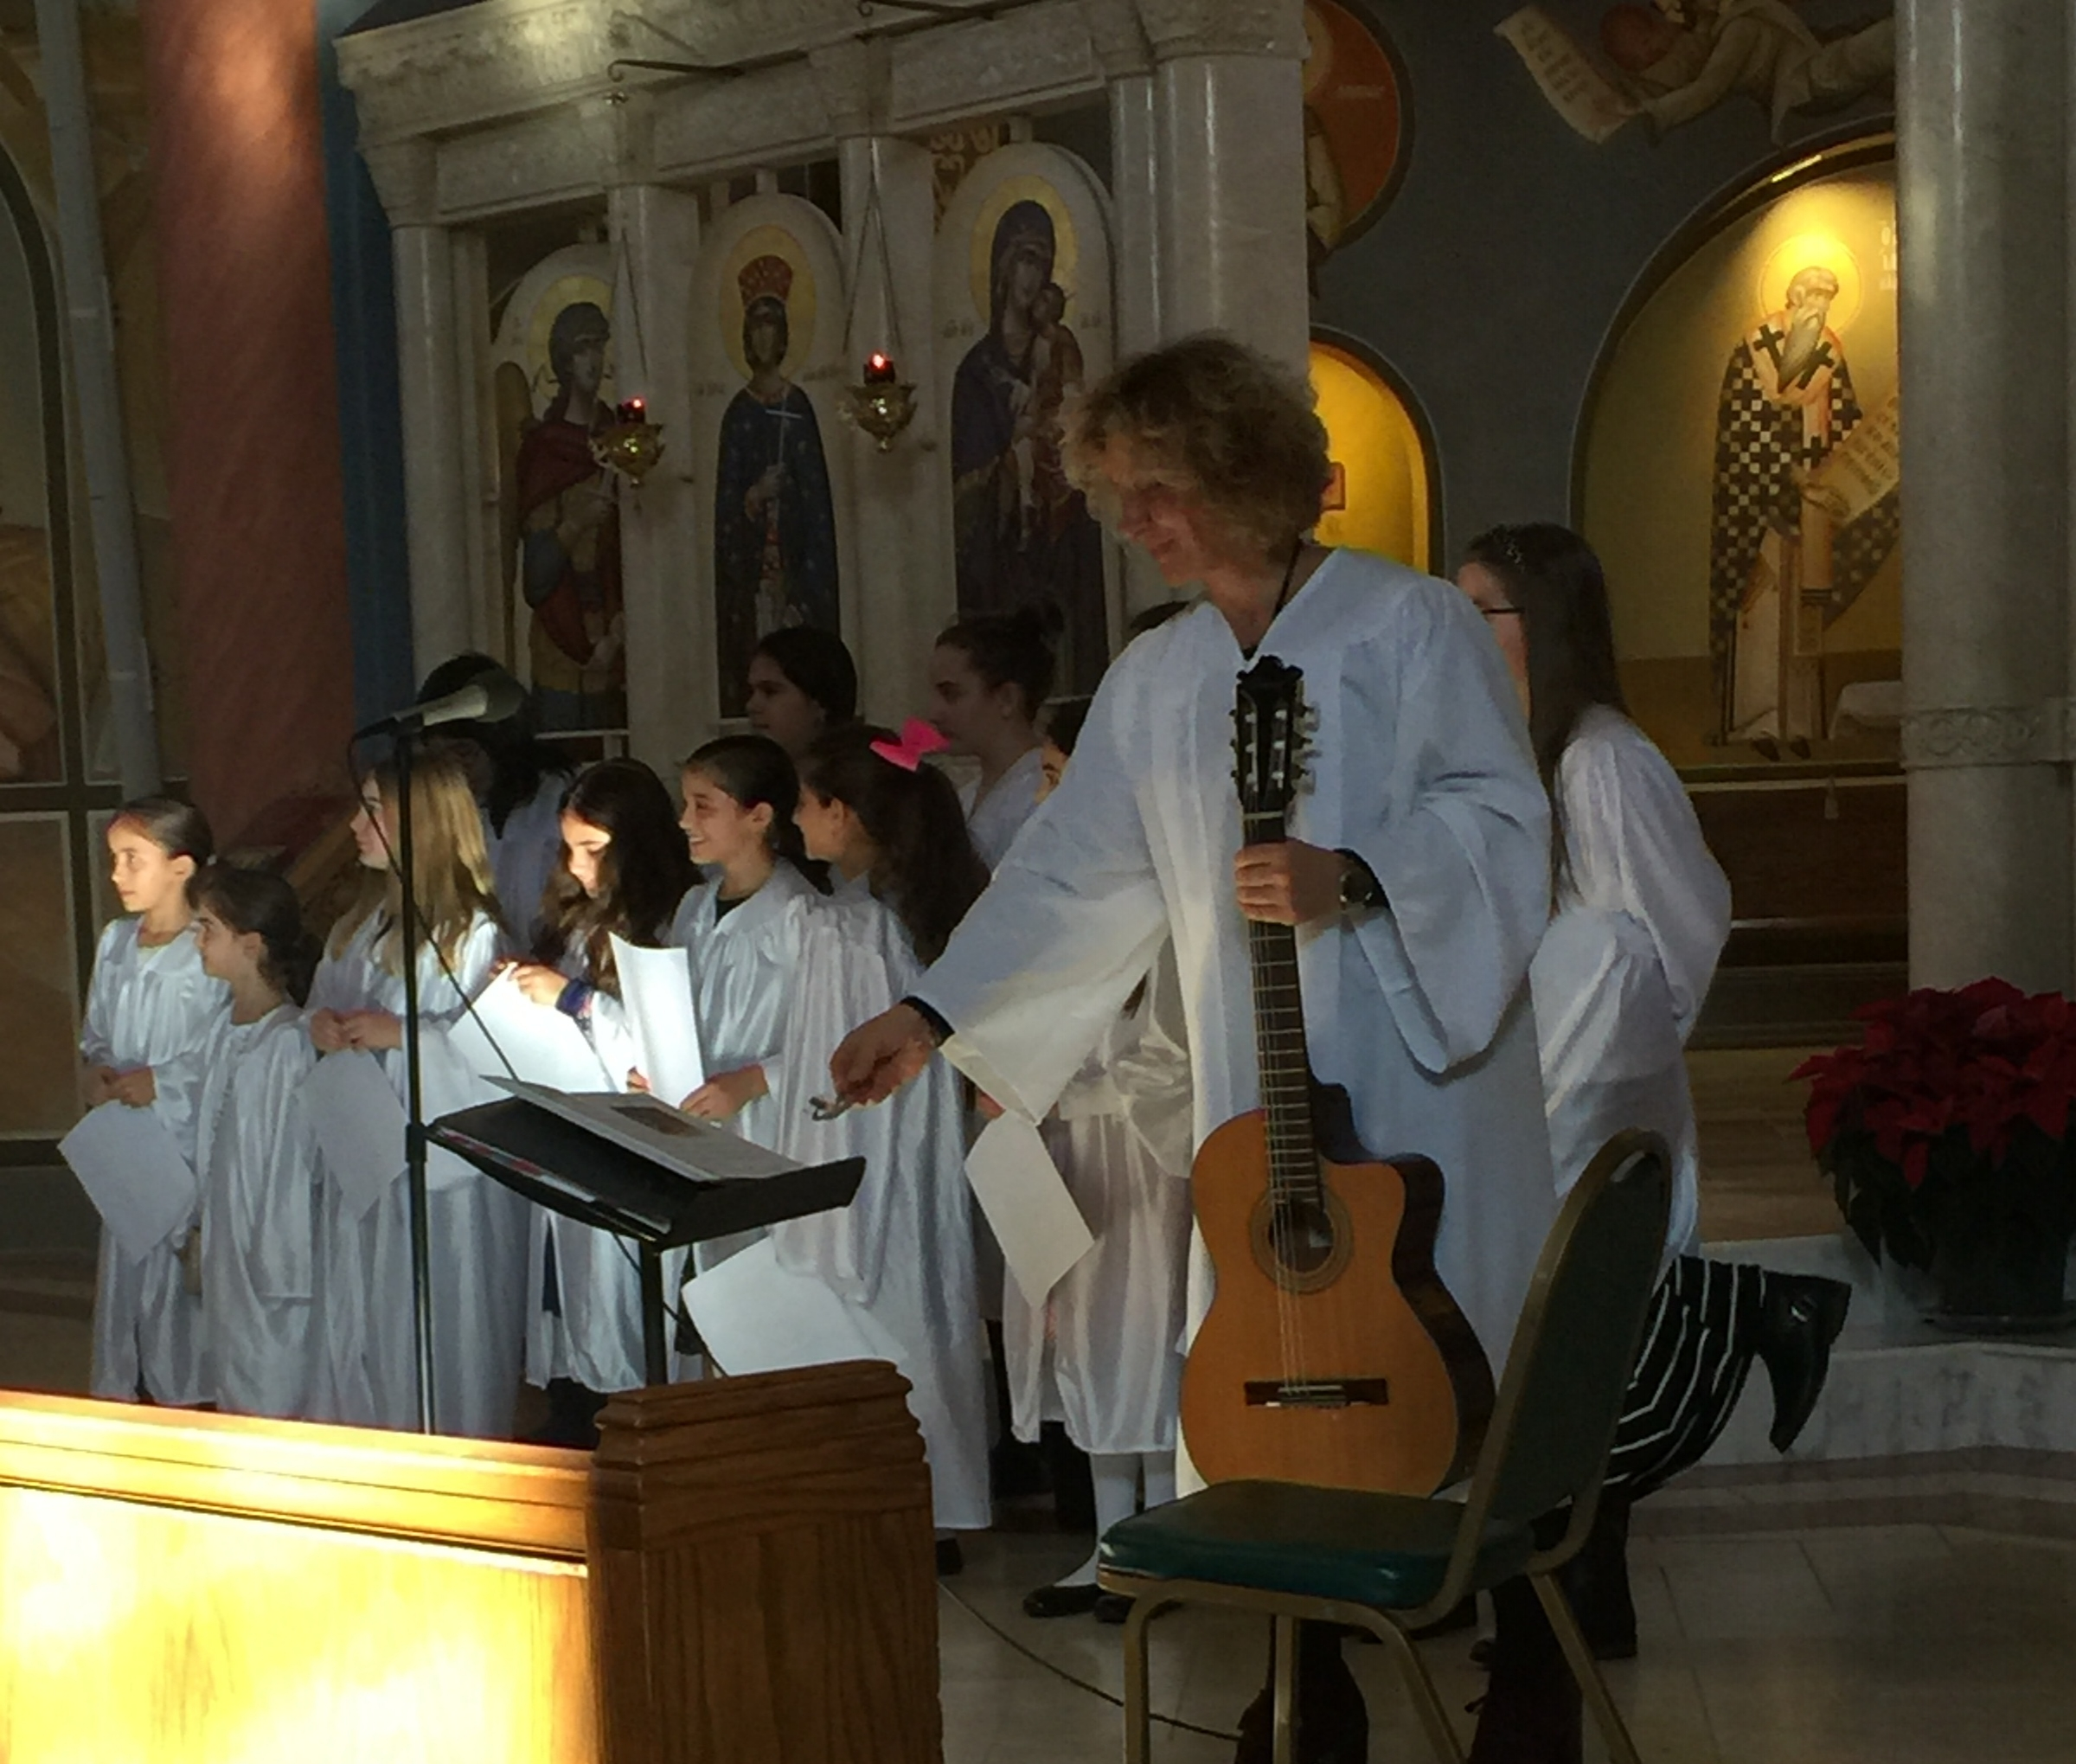 Choir - Saint Catherine's Youth Choir encourages children to chant hymns and become active participants during the Divine Liturgy and other church services. The Children's Choir chants responses and hymns of the Divine Liturgy every other week. The choir also leads the faithful in the singing of the carols during the Annual Christmas Pageant providing inspiration for all who attend.